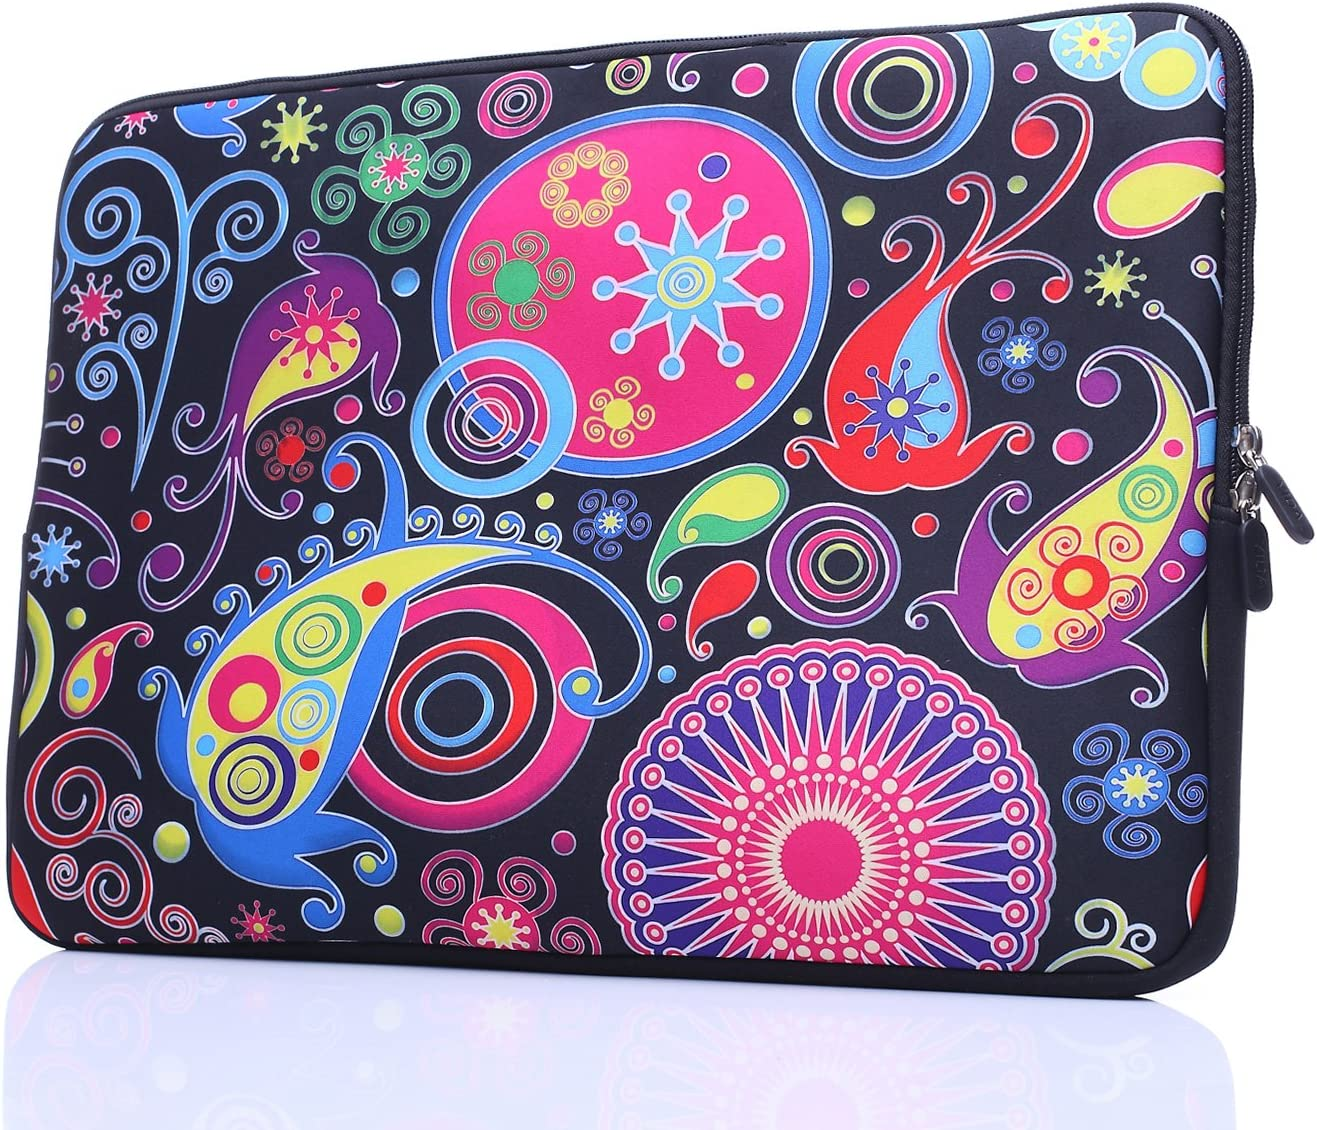 15-Inch to 15.6-Inch Laptop Sleeve Carrying Case Neoprene Sleeve for Acer/Asus/Dell/Lenovo/MacBook Pro/HP/Samsung/Sony/Toshiba, Classic Colorful